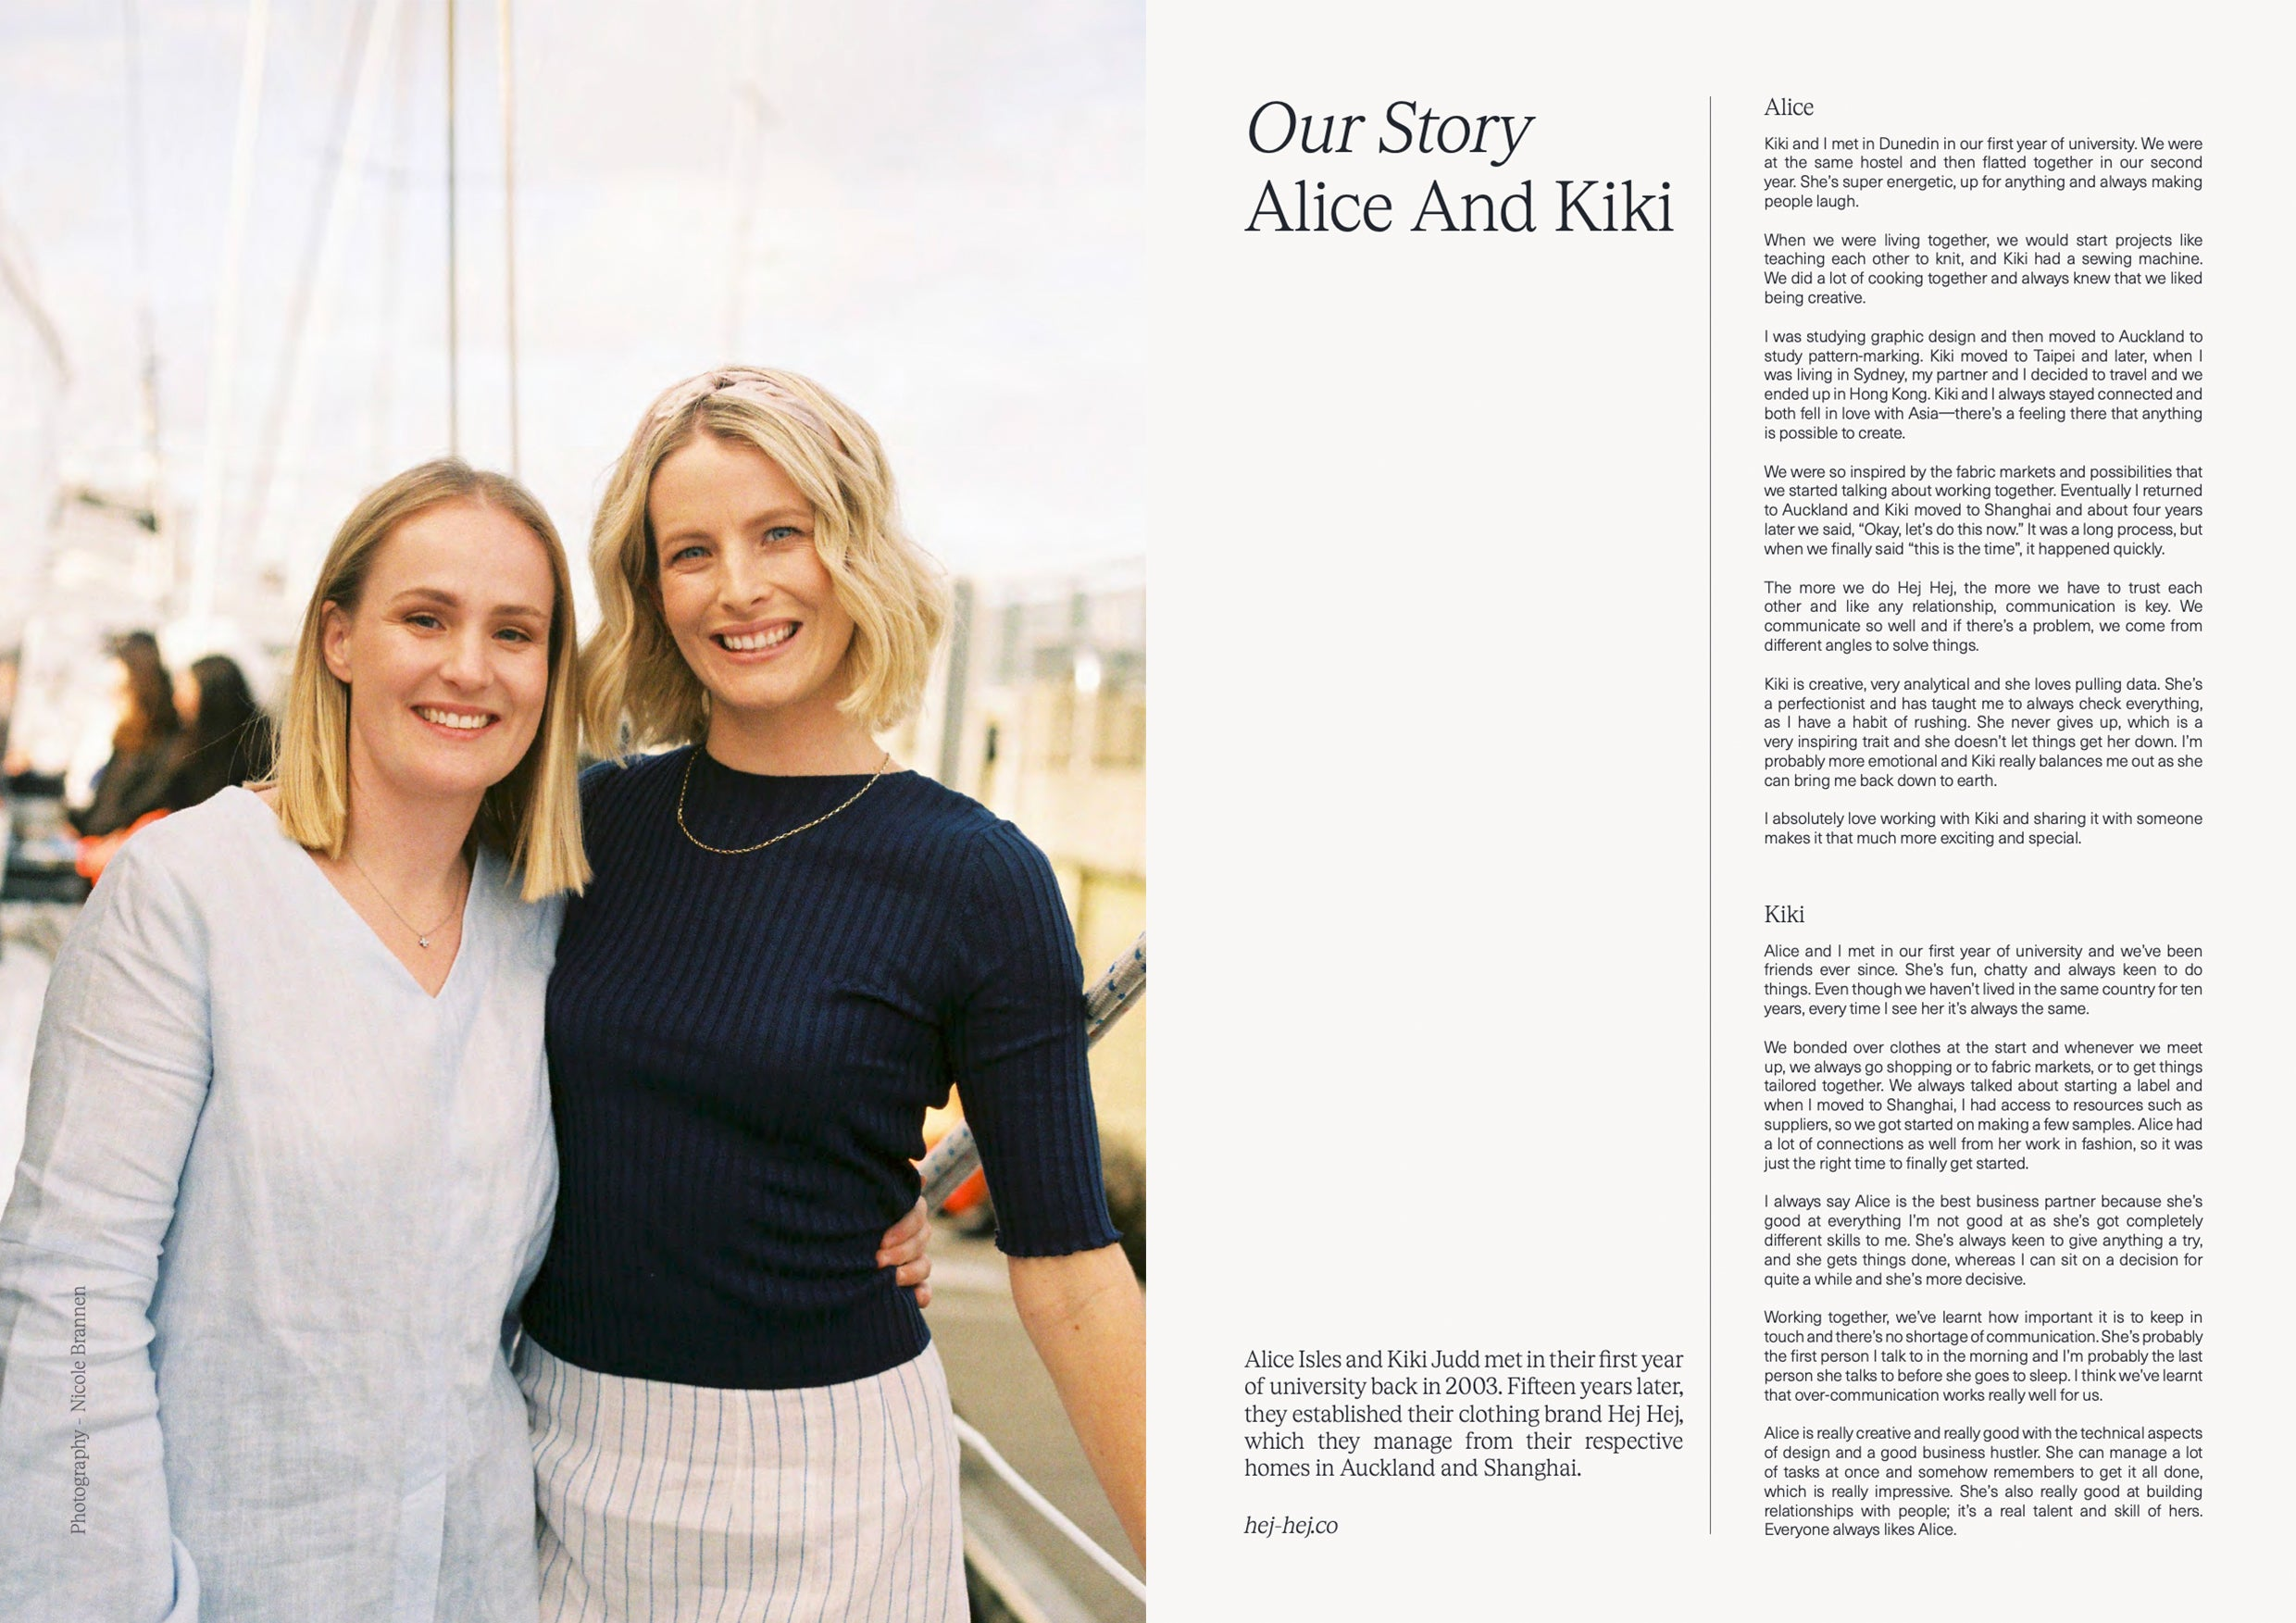 Verve - Our Story Alice and Kiki